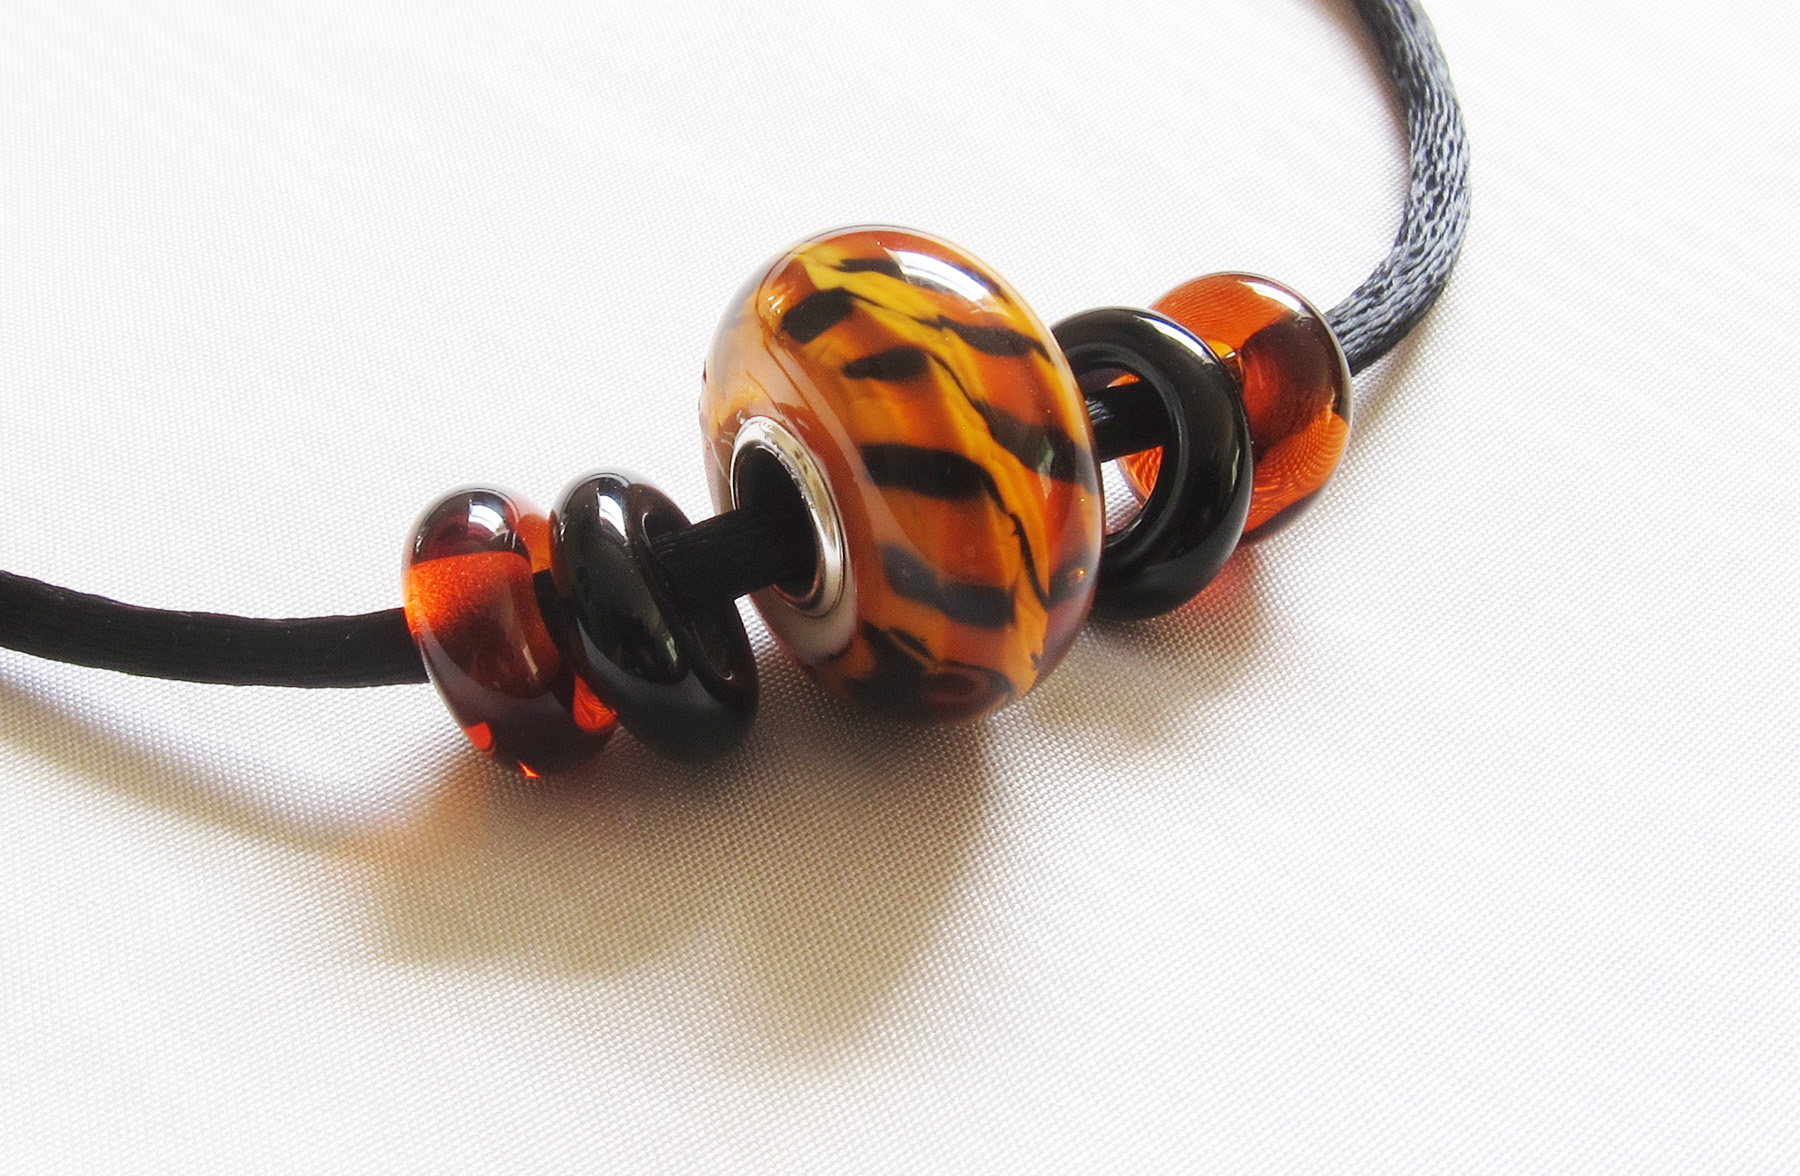 Bad Kitty Tiger Silver Core Bead Necklace on Satin Cord